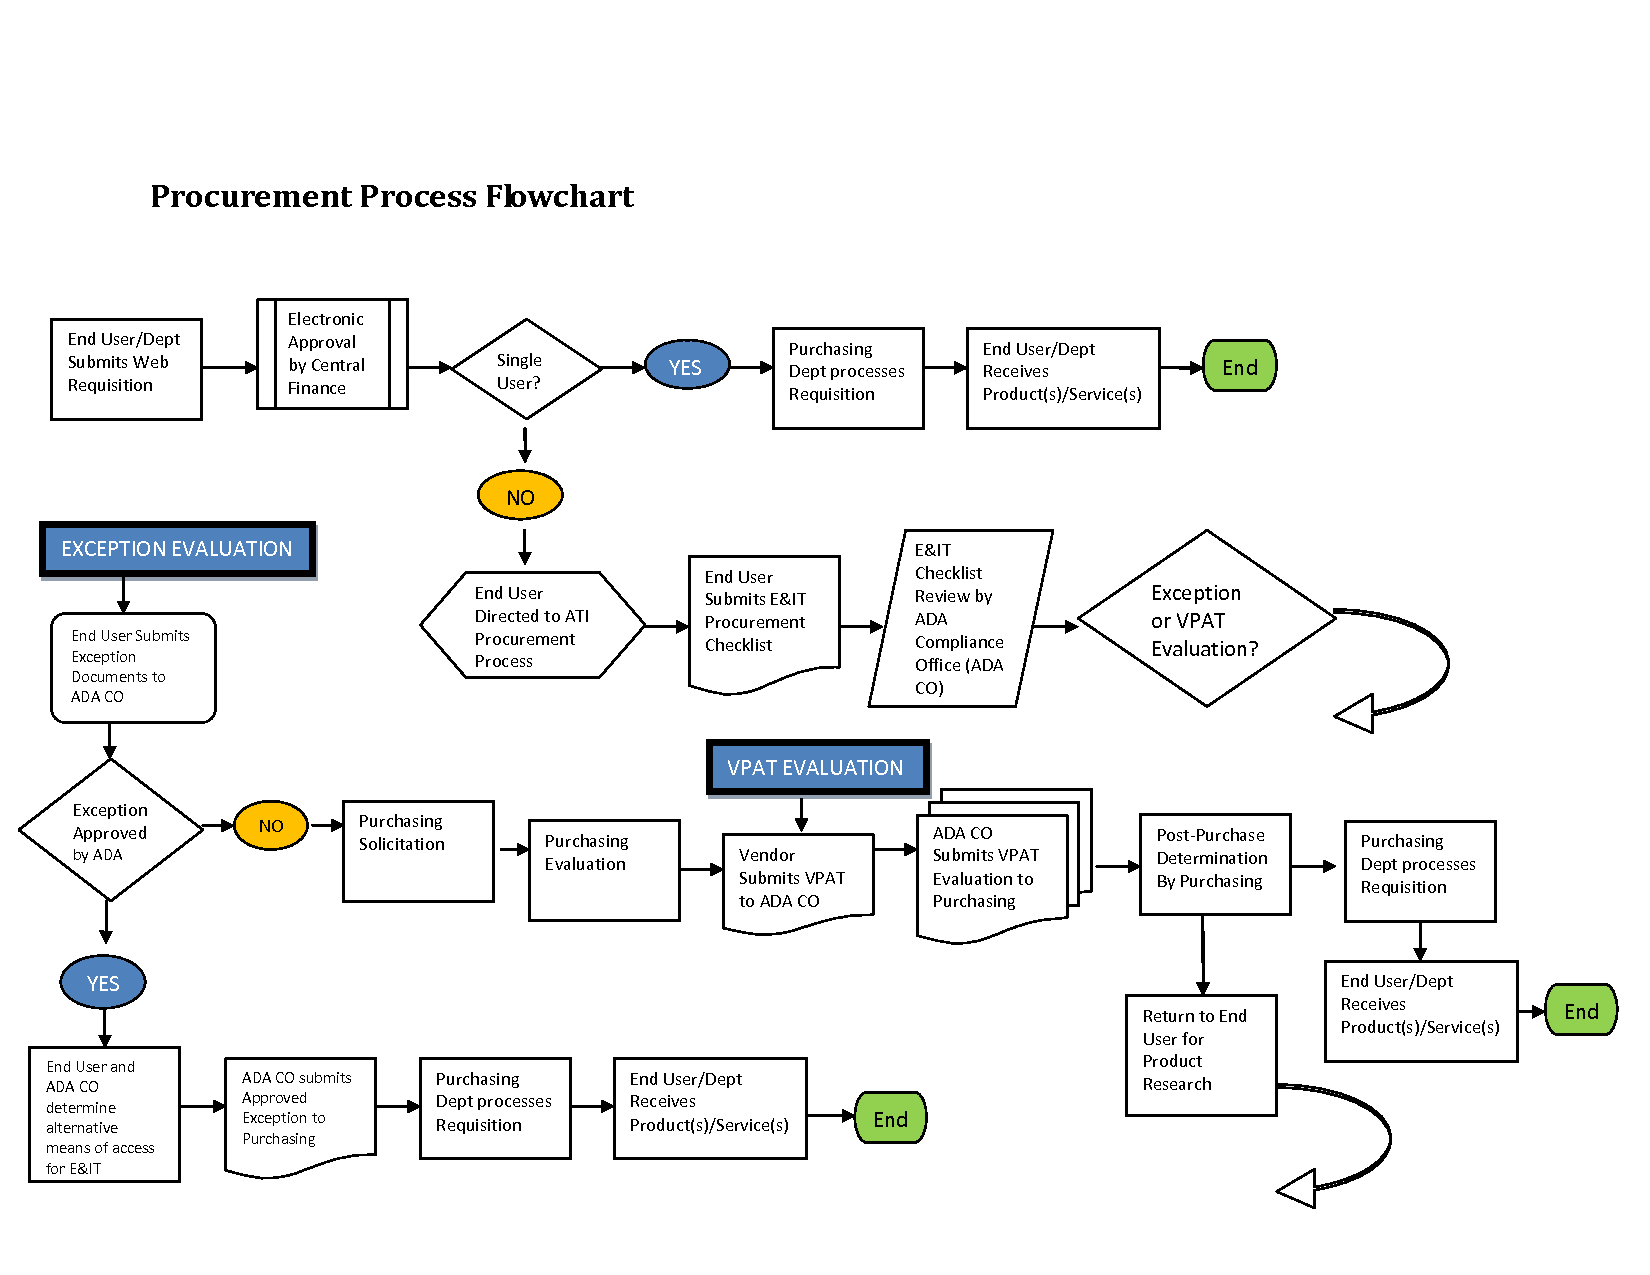 Awesome Procurement Process Flow Chart Template Images